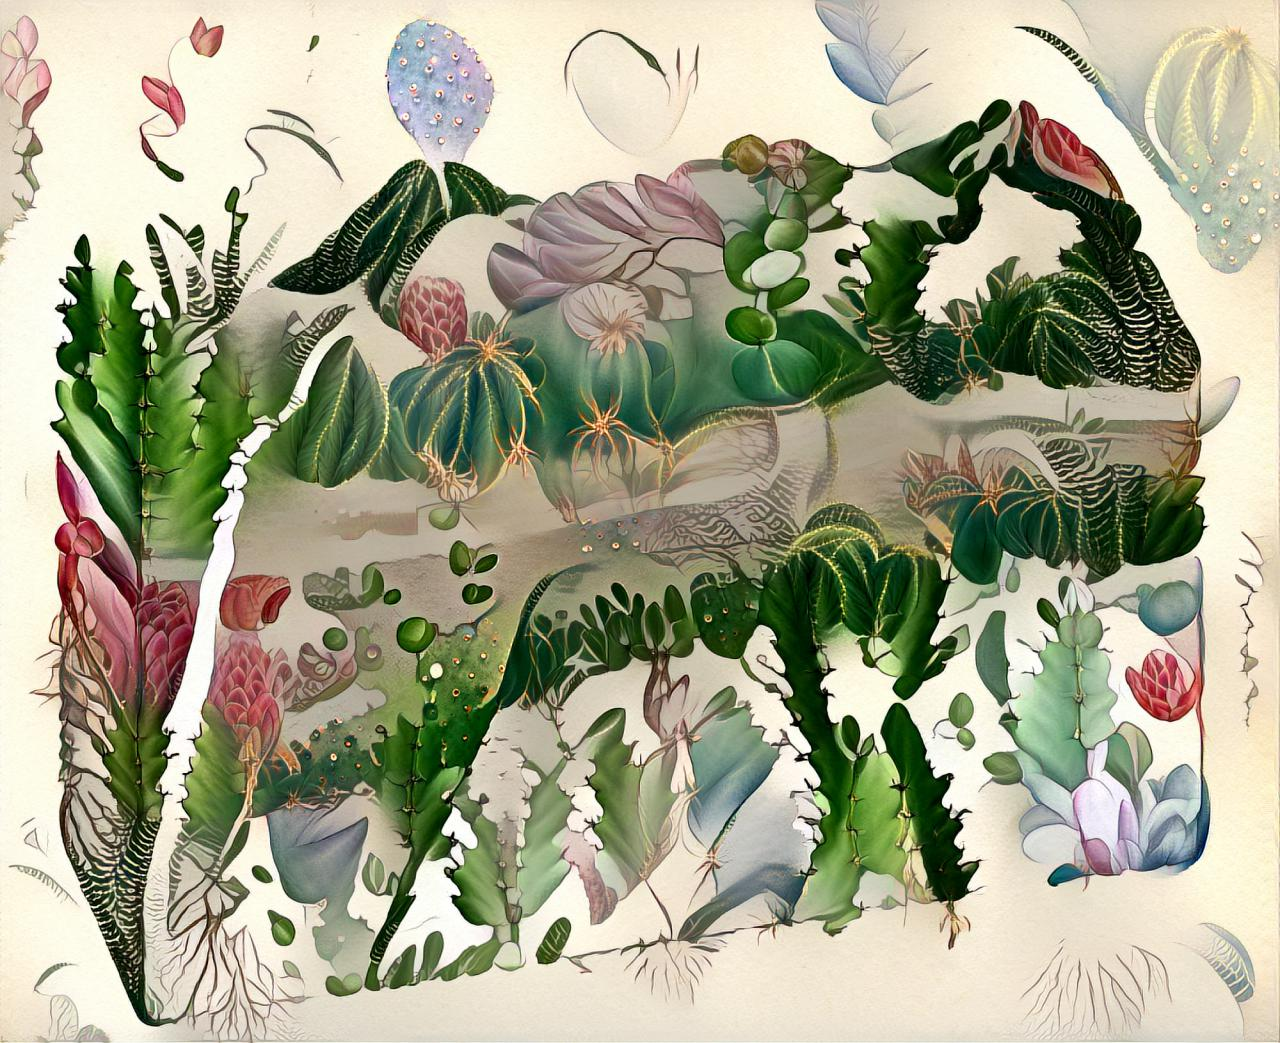 The drawing is animated by an algorithm that shows the cross-section of the ground, but instead of sediments a deep interlocking between animals and their environment.